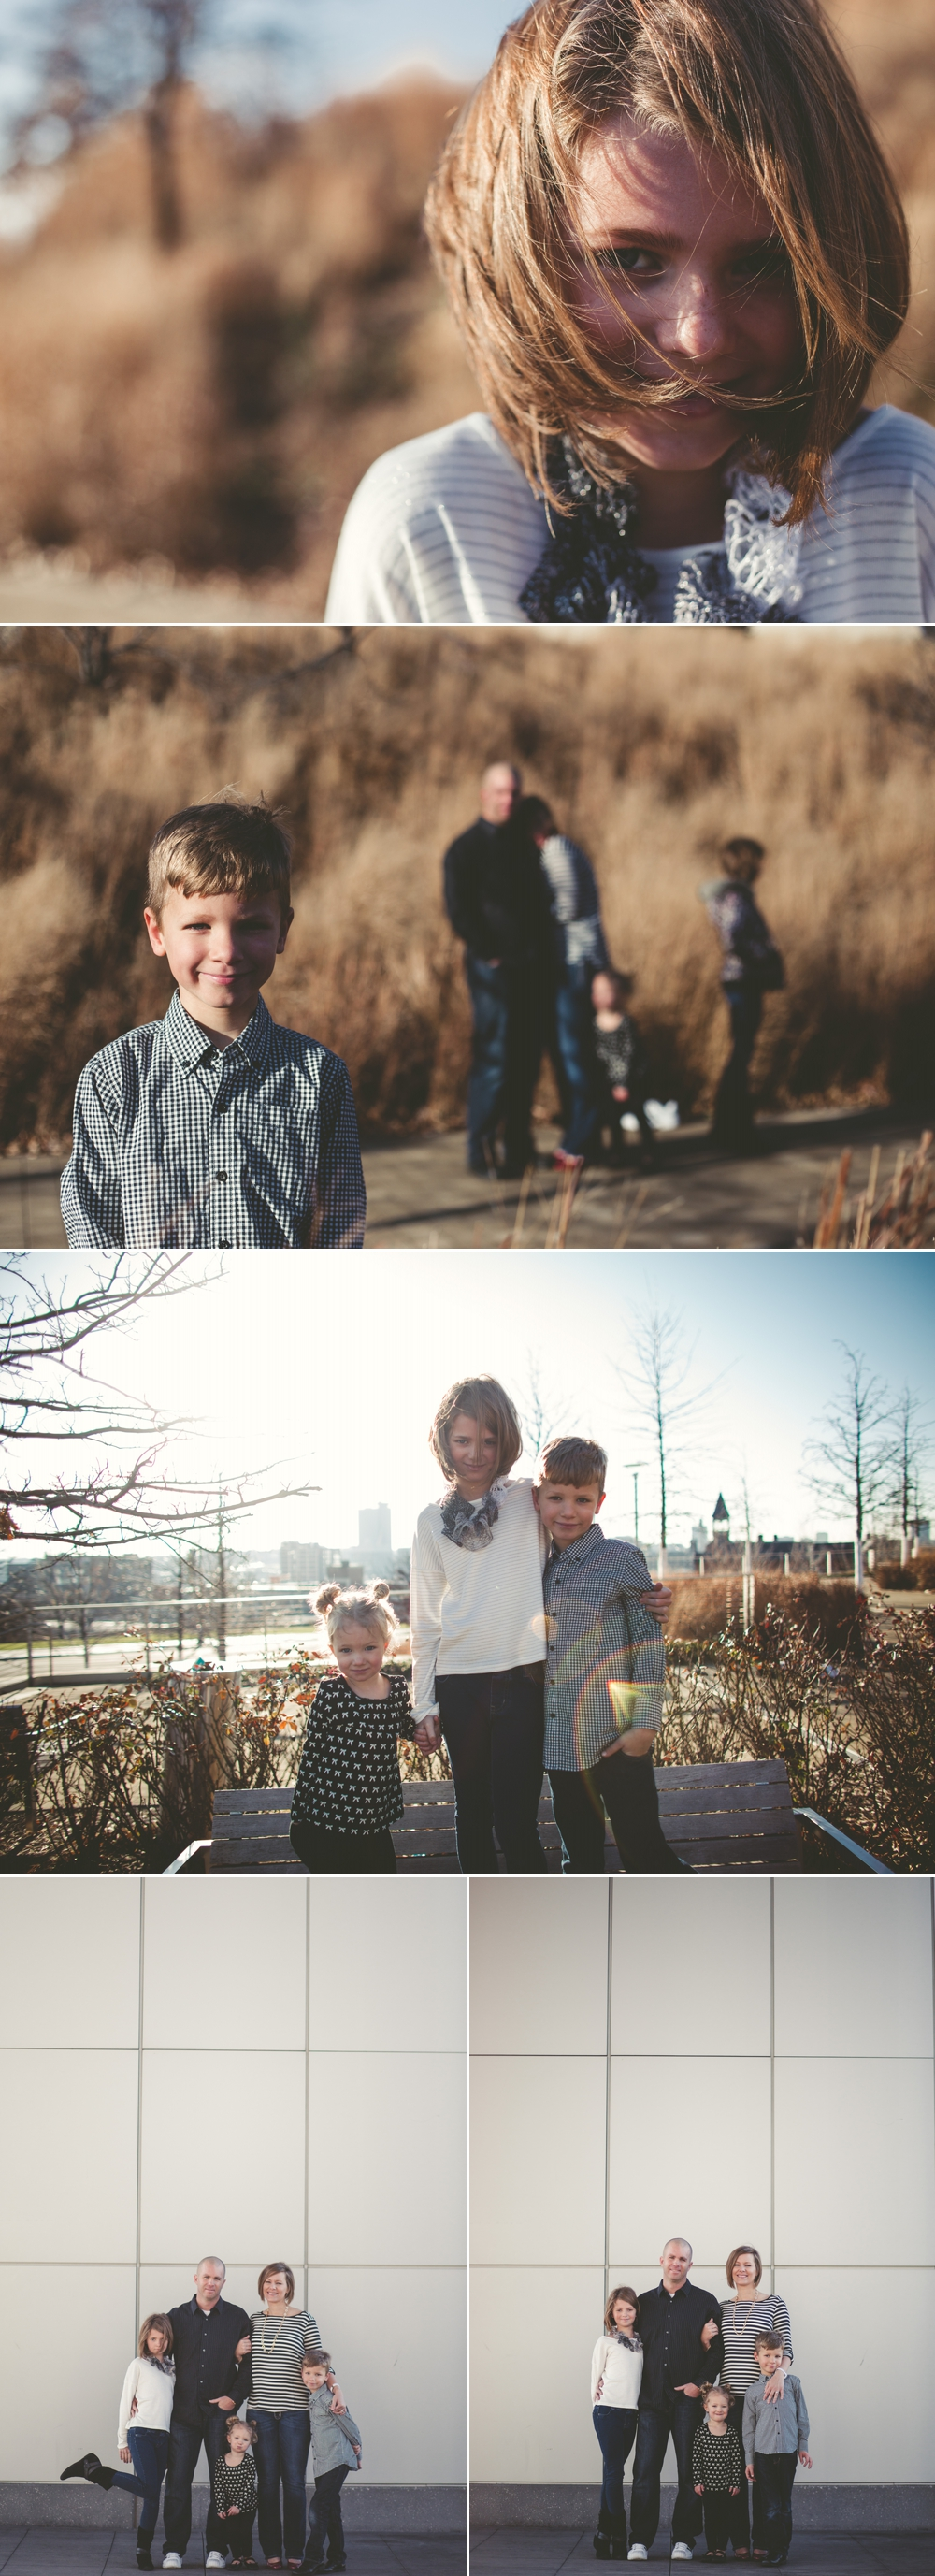 jason_domingues_photography_best_kansas_city_photographer_family_portraits_1